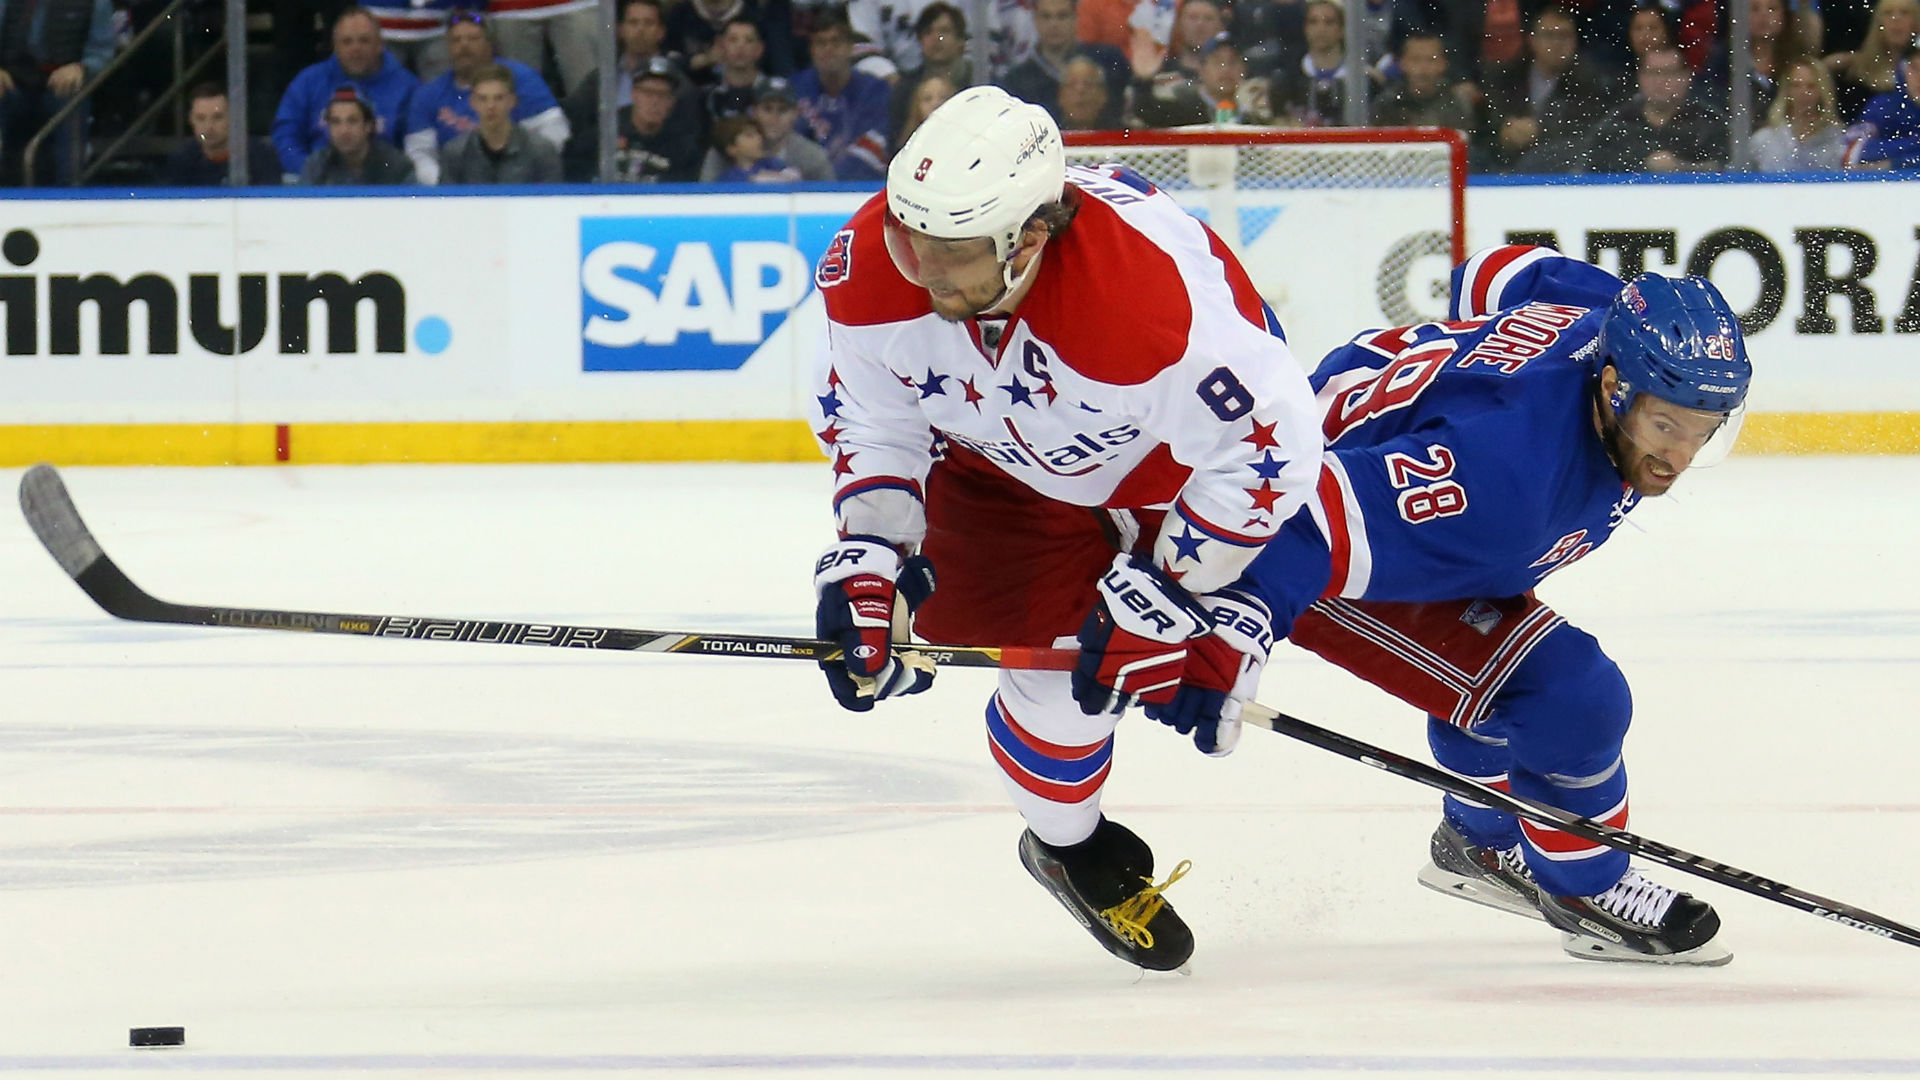 Alex Ovechkin splits the Rangers D for incredible goal